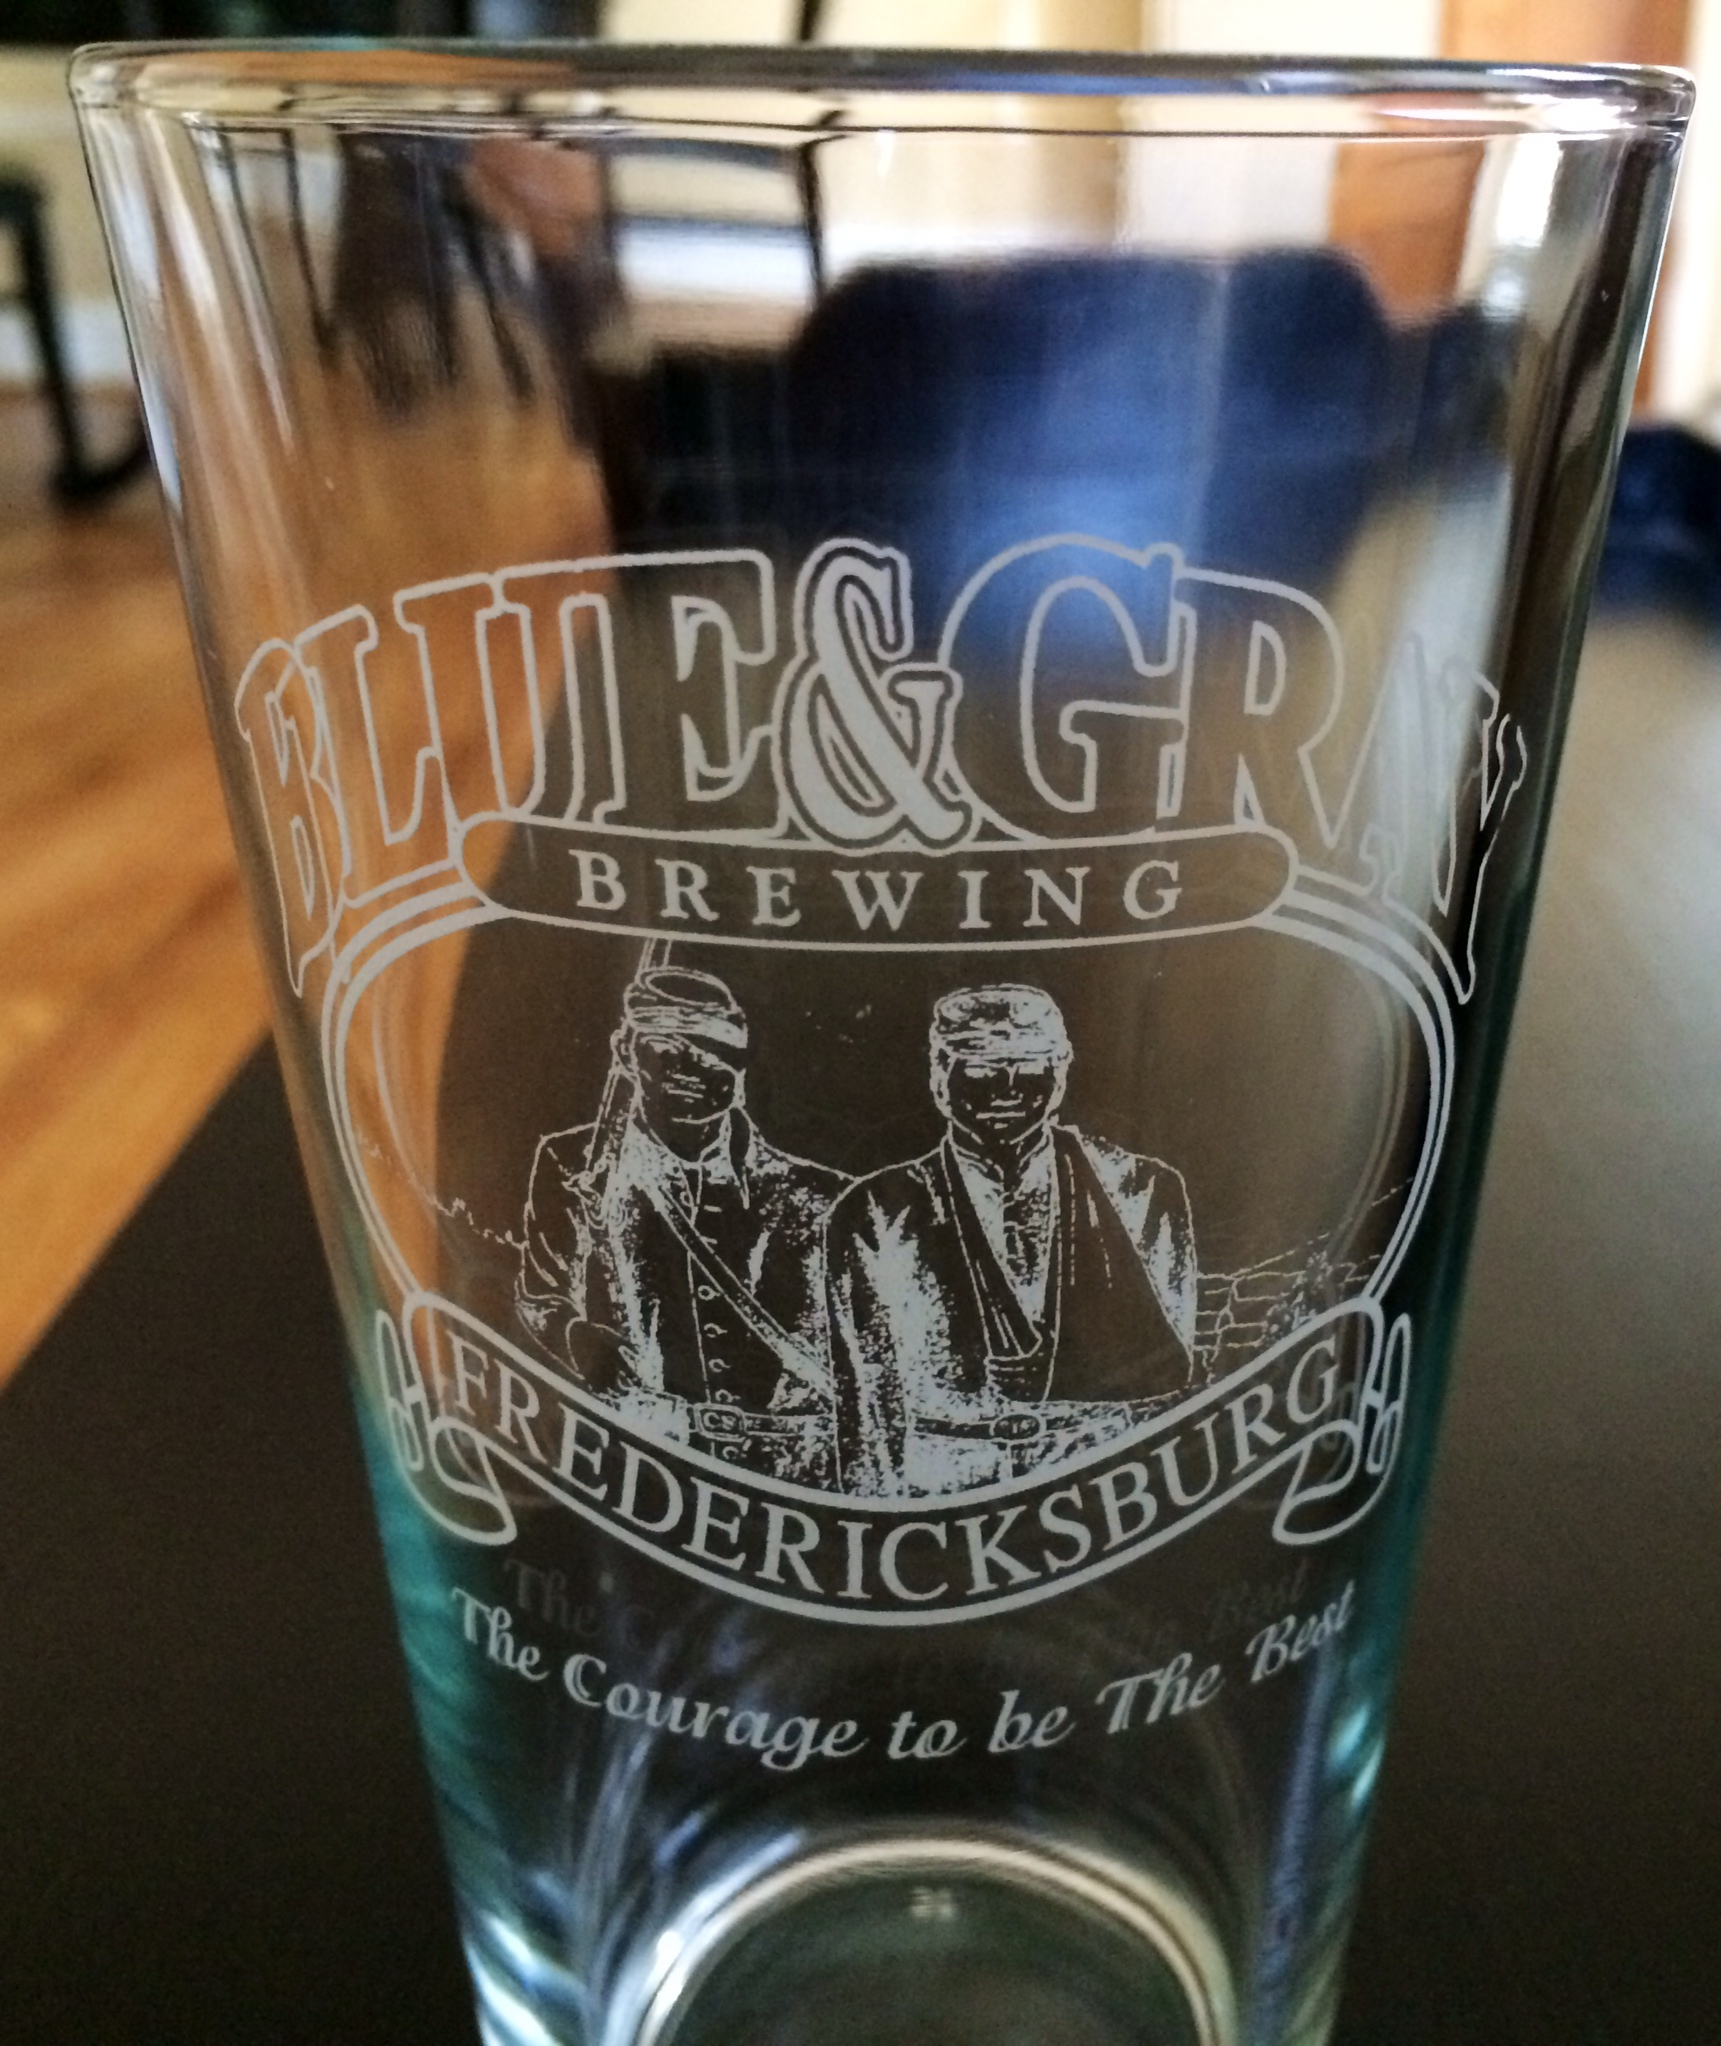 Pint glass from the Blue & Grey Brewing Co